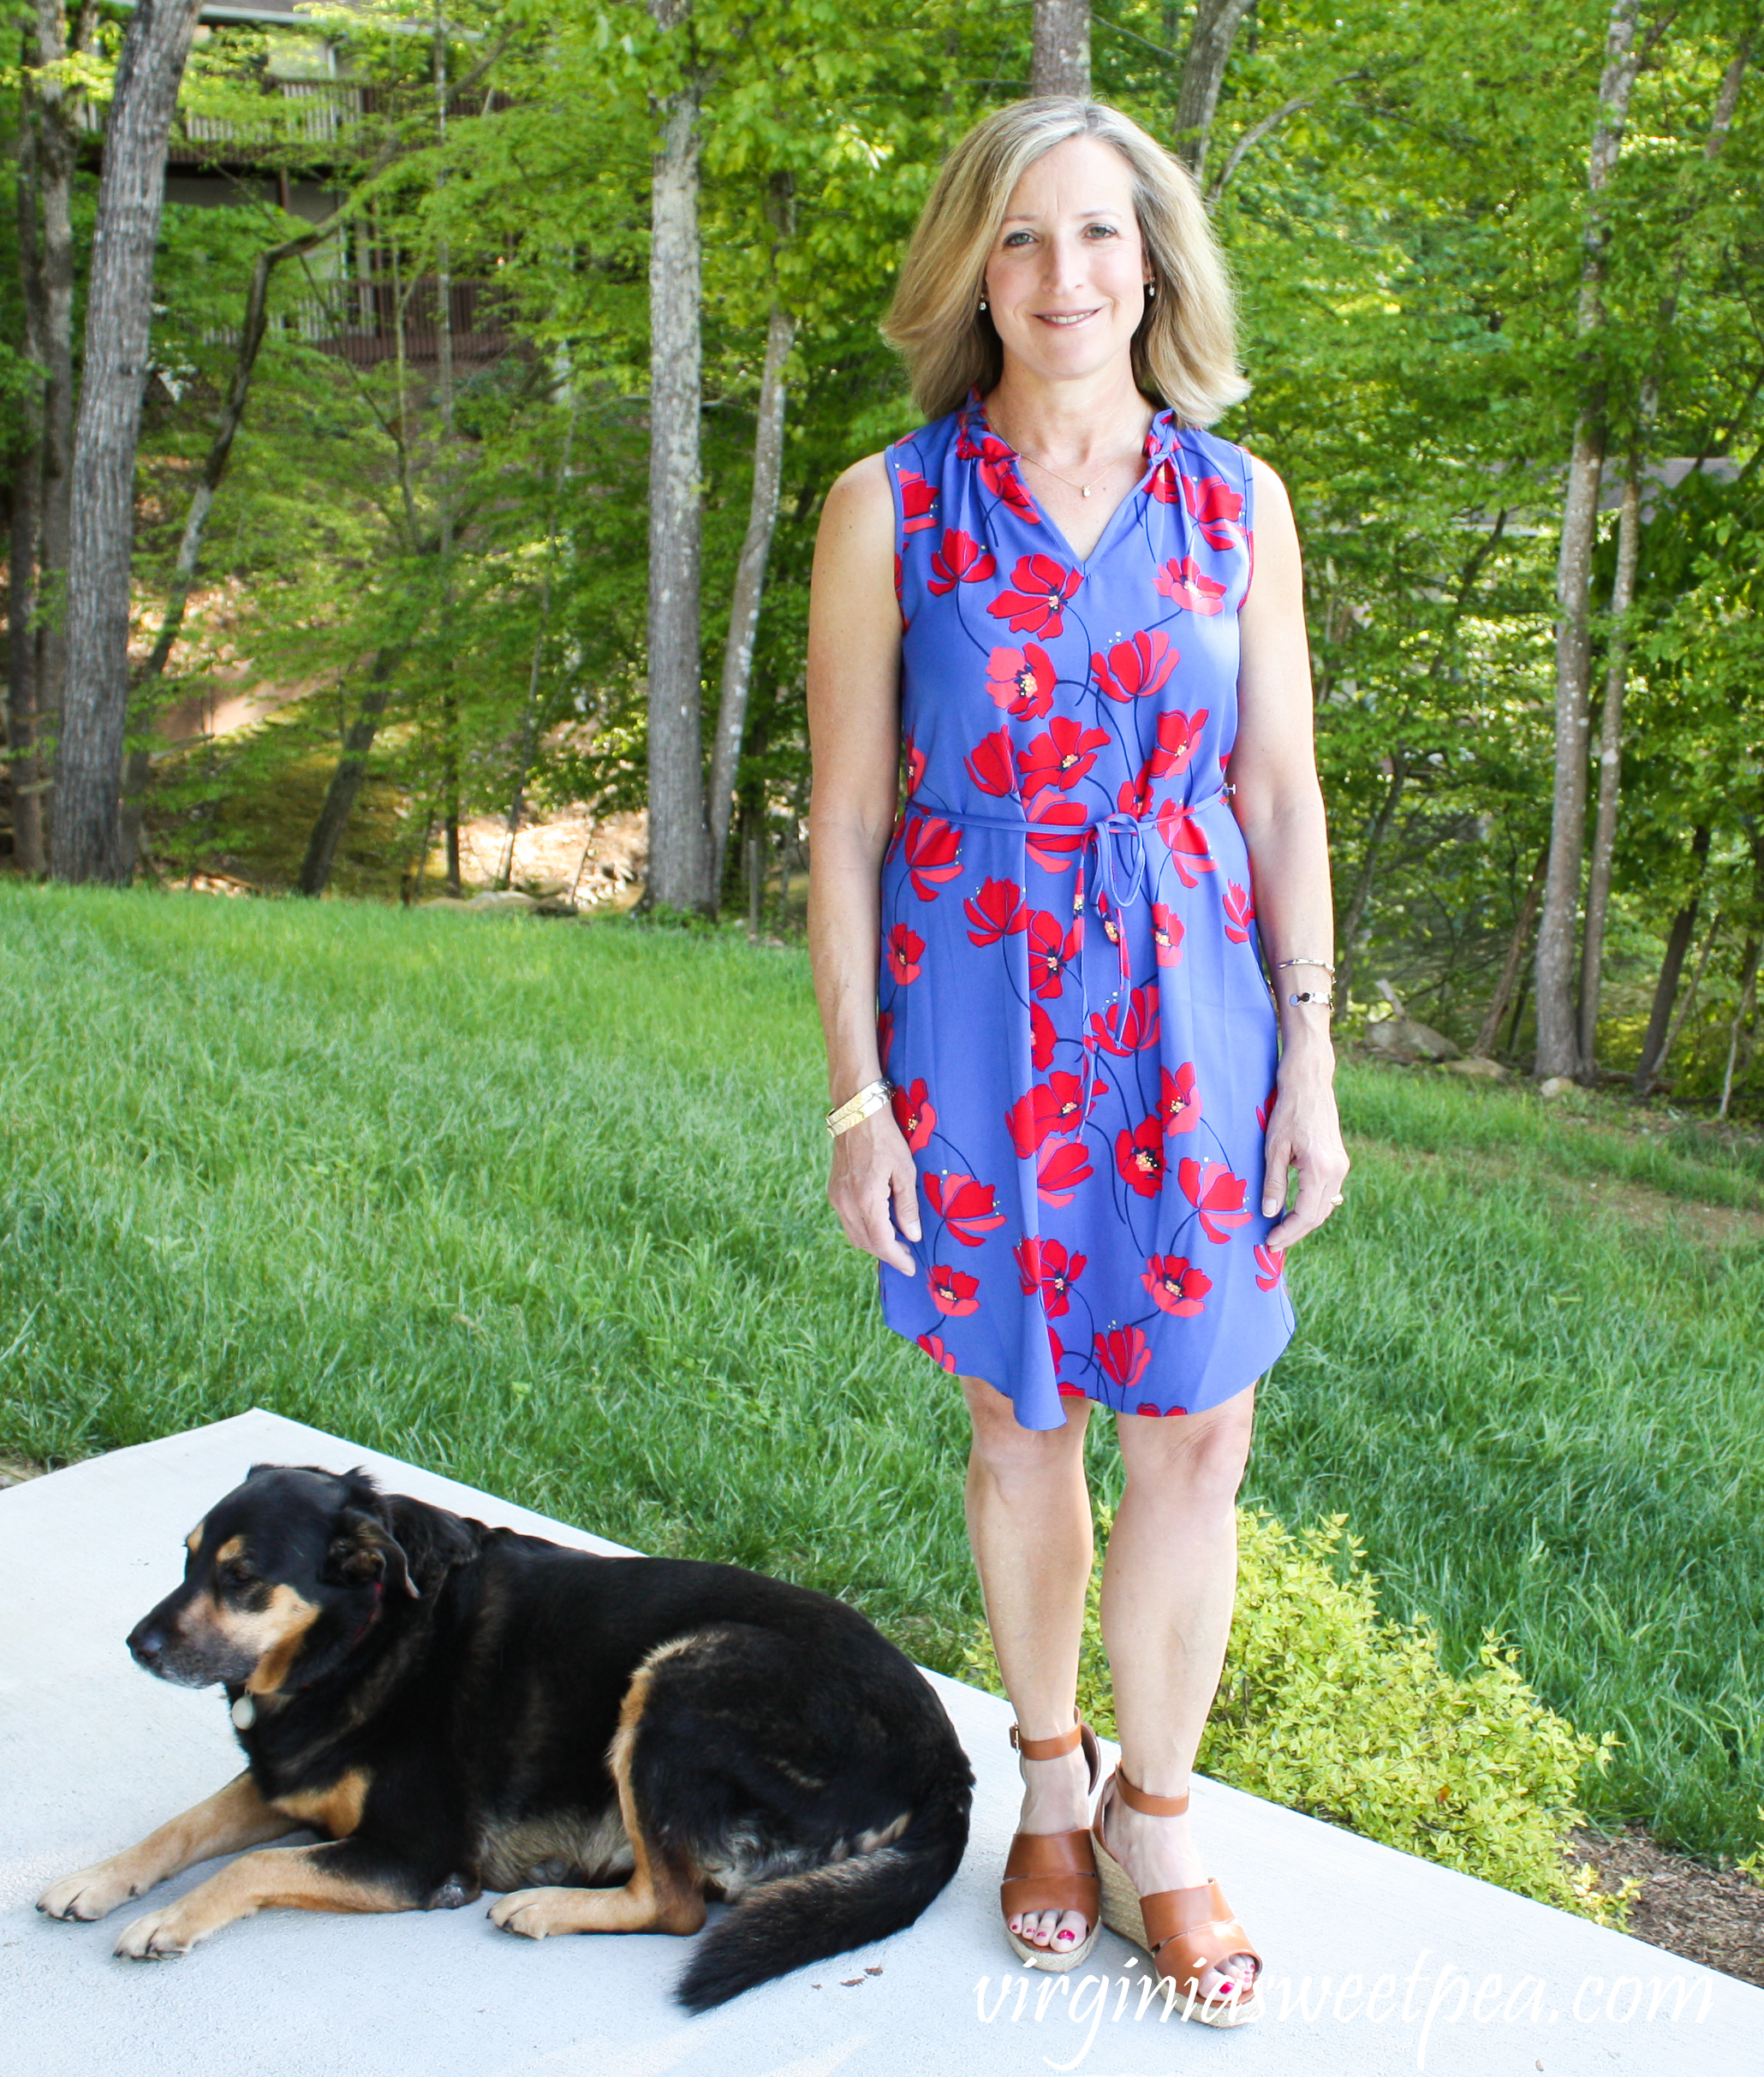 Stitch Fix Review for May 2019 - Market & Spruce Jeanie Ruffle Detail Dress #stitchfix #stitchfixreview #stitchfixdress #stitchfixsummer #shermanskulina